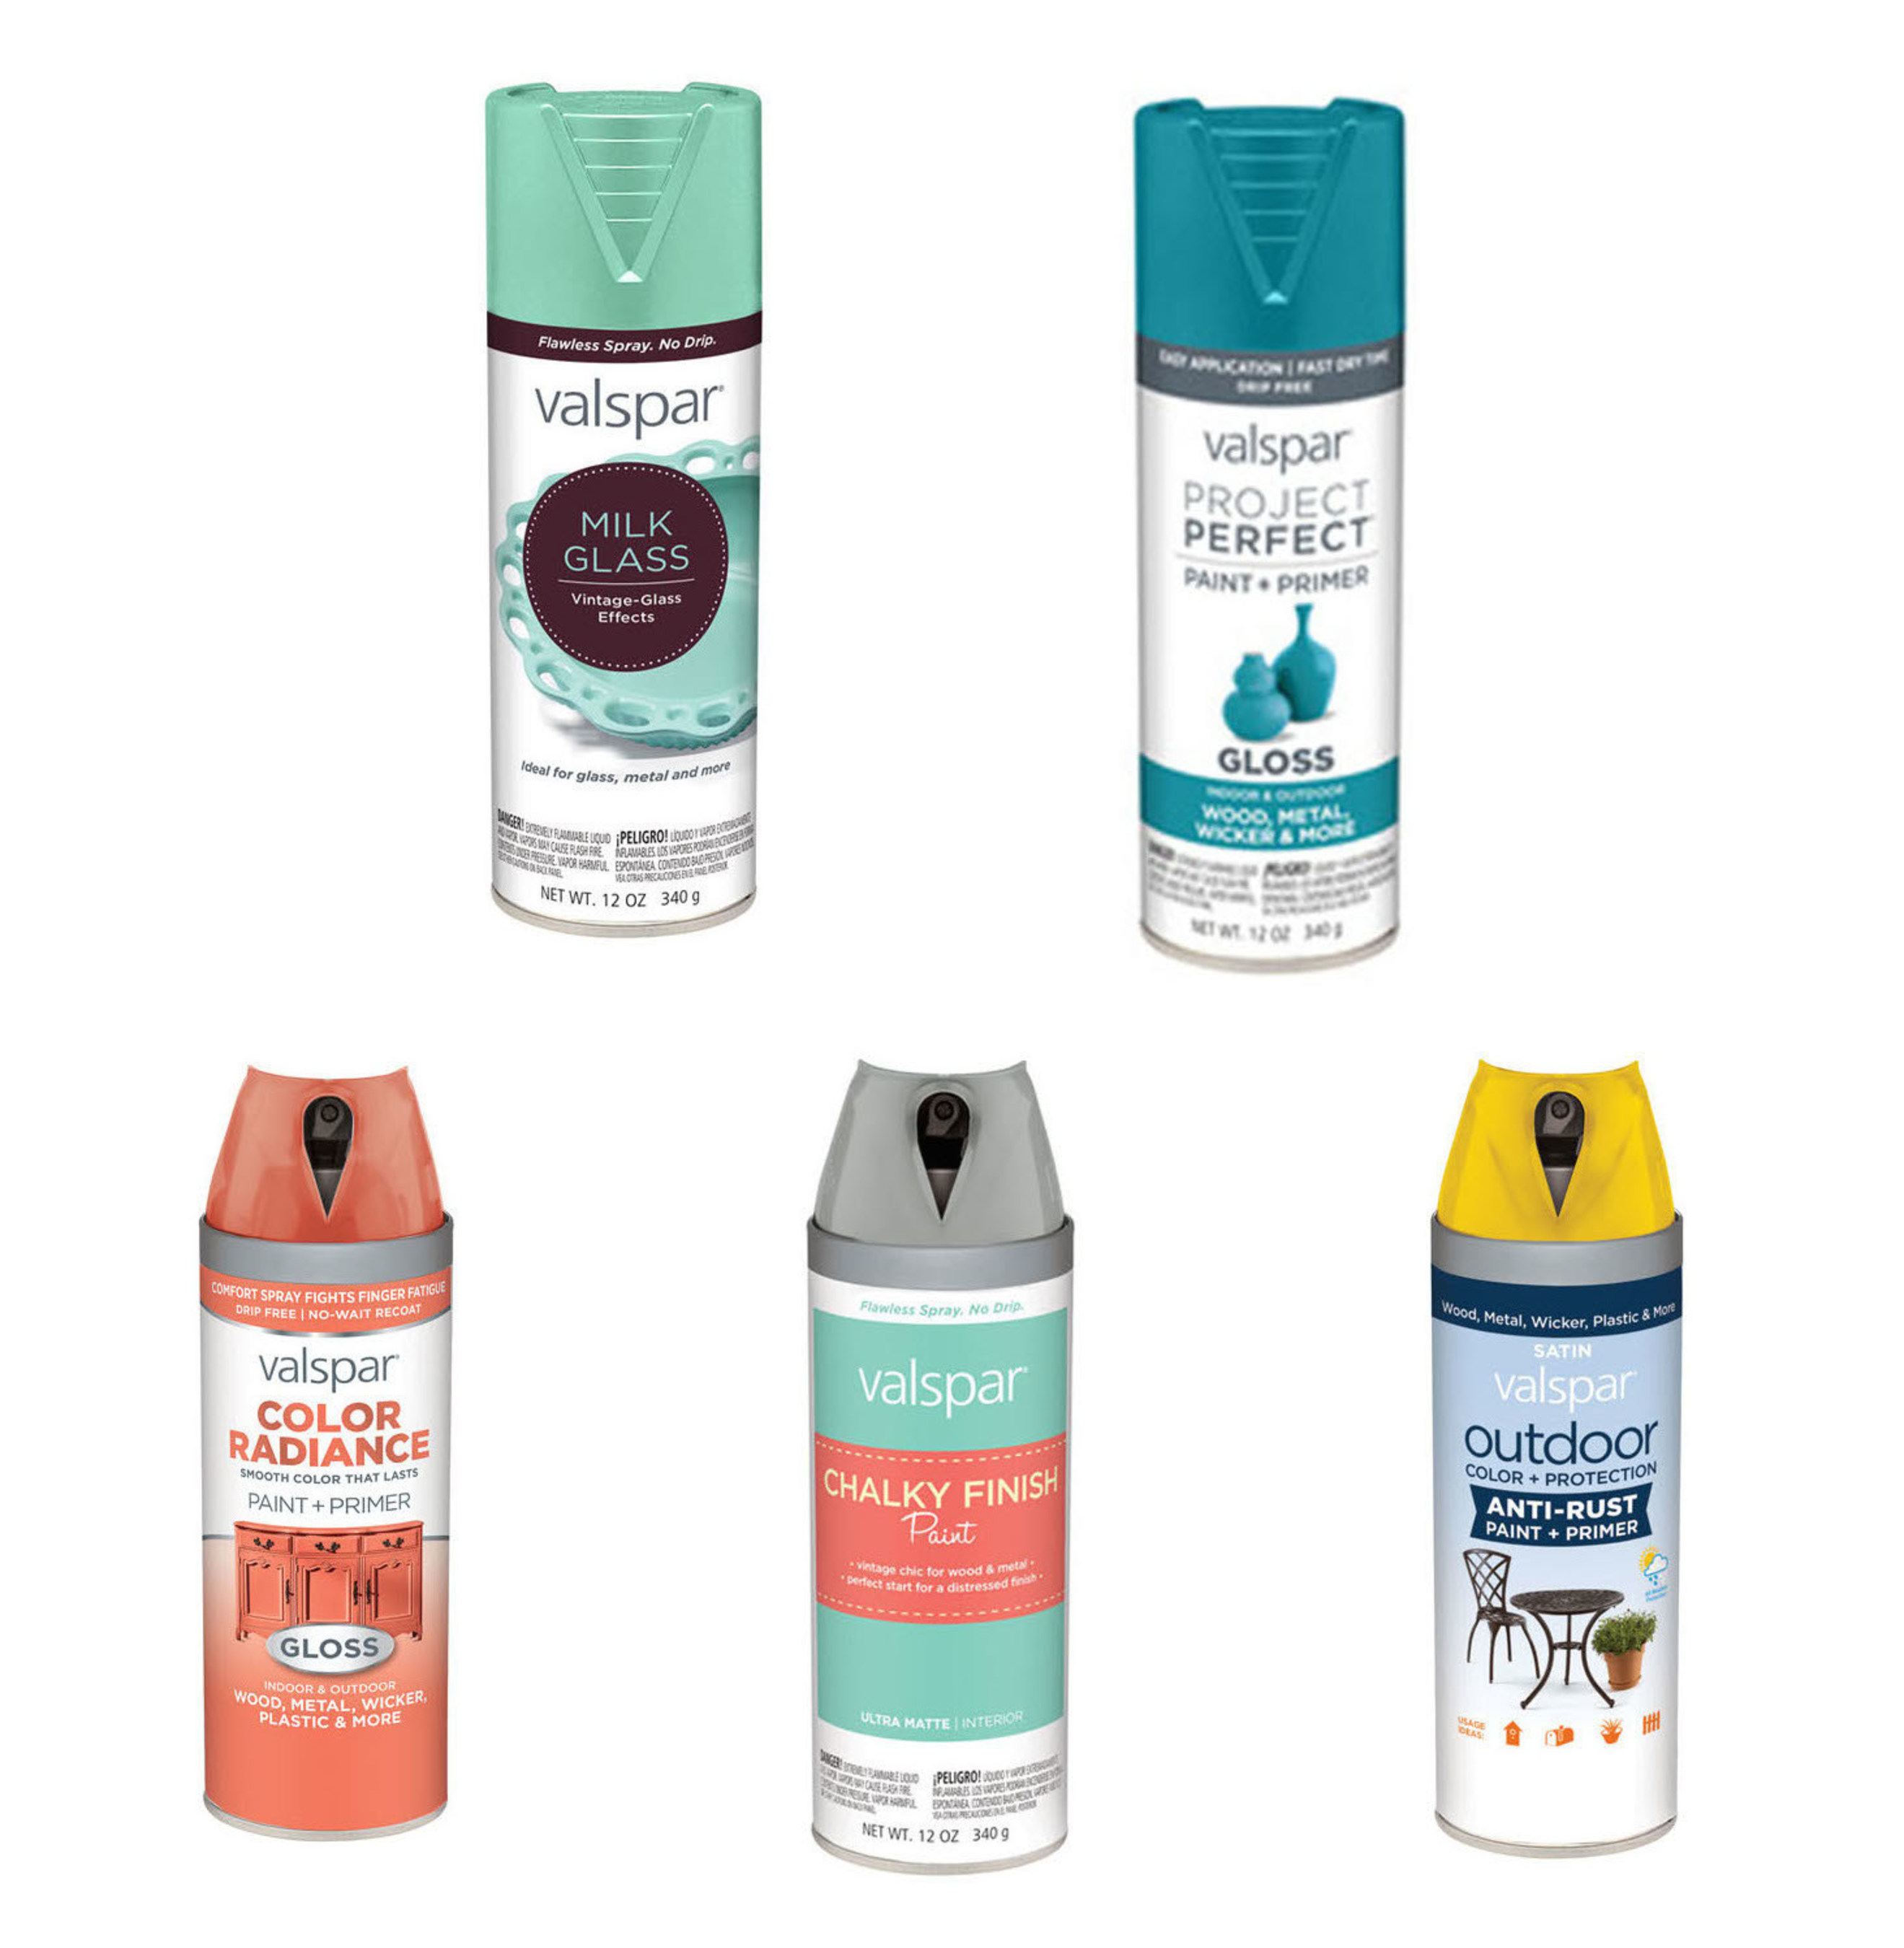 Valspar expands spray paint offering at Lowe's with decorative finishes and more.